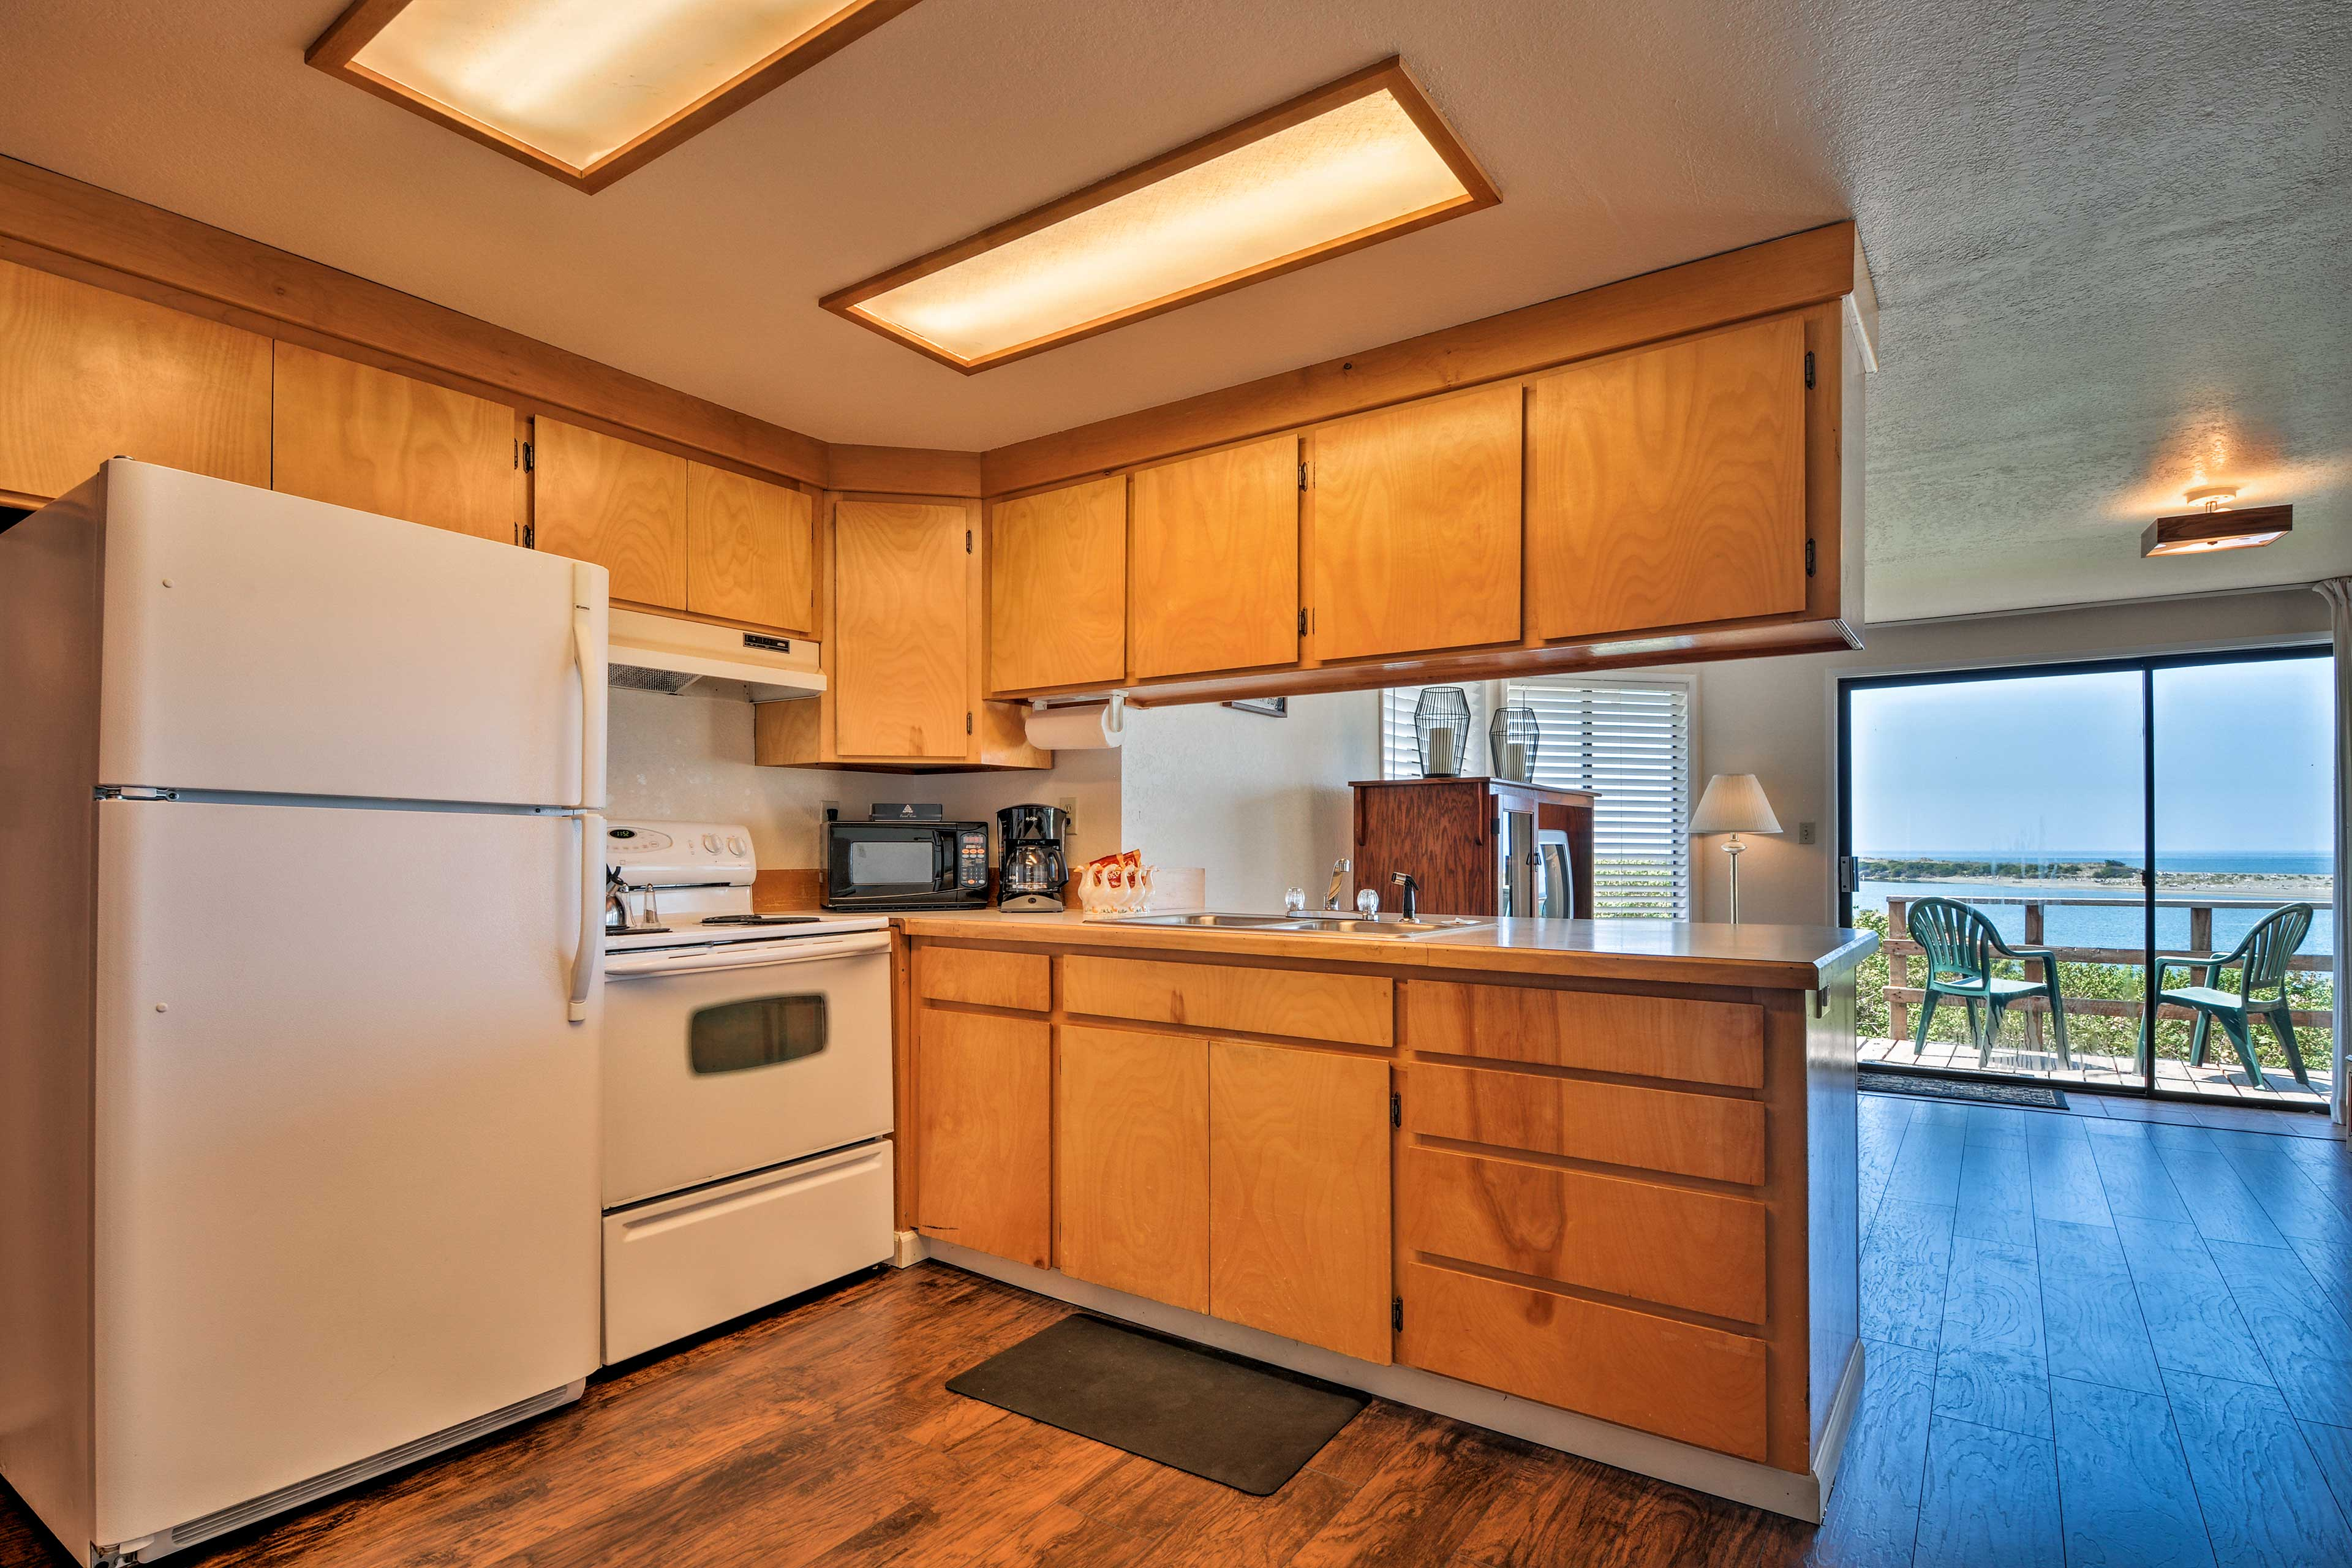 The fully equipped kitchen is spacious and convenient.